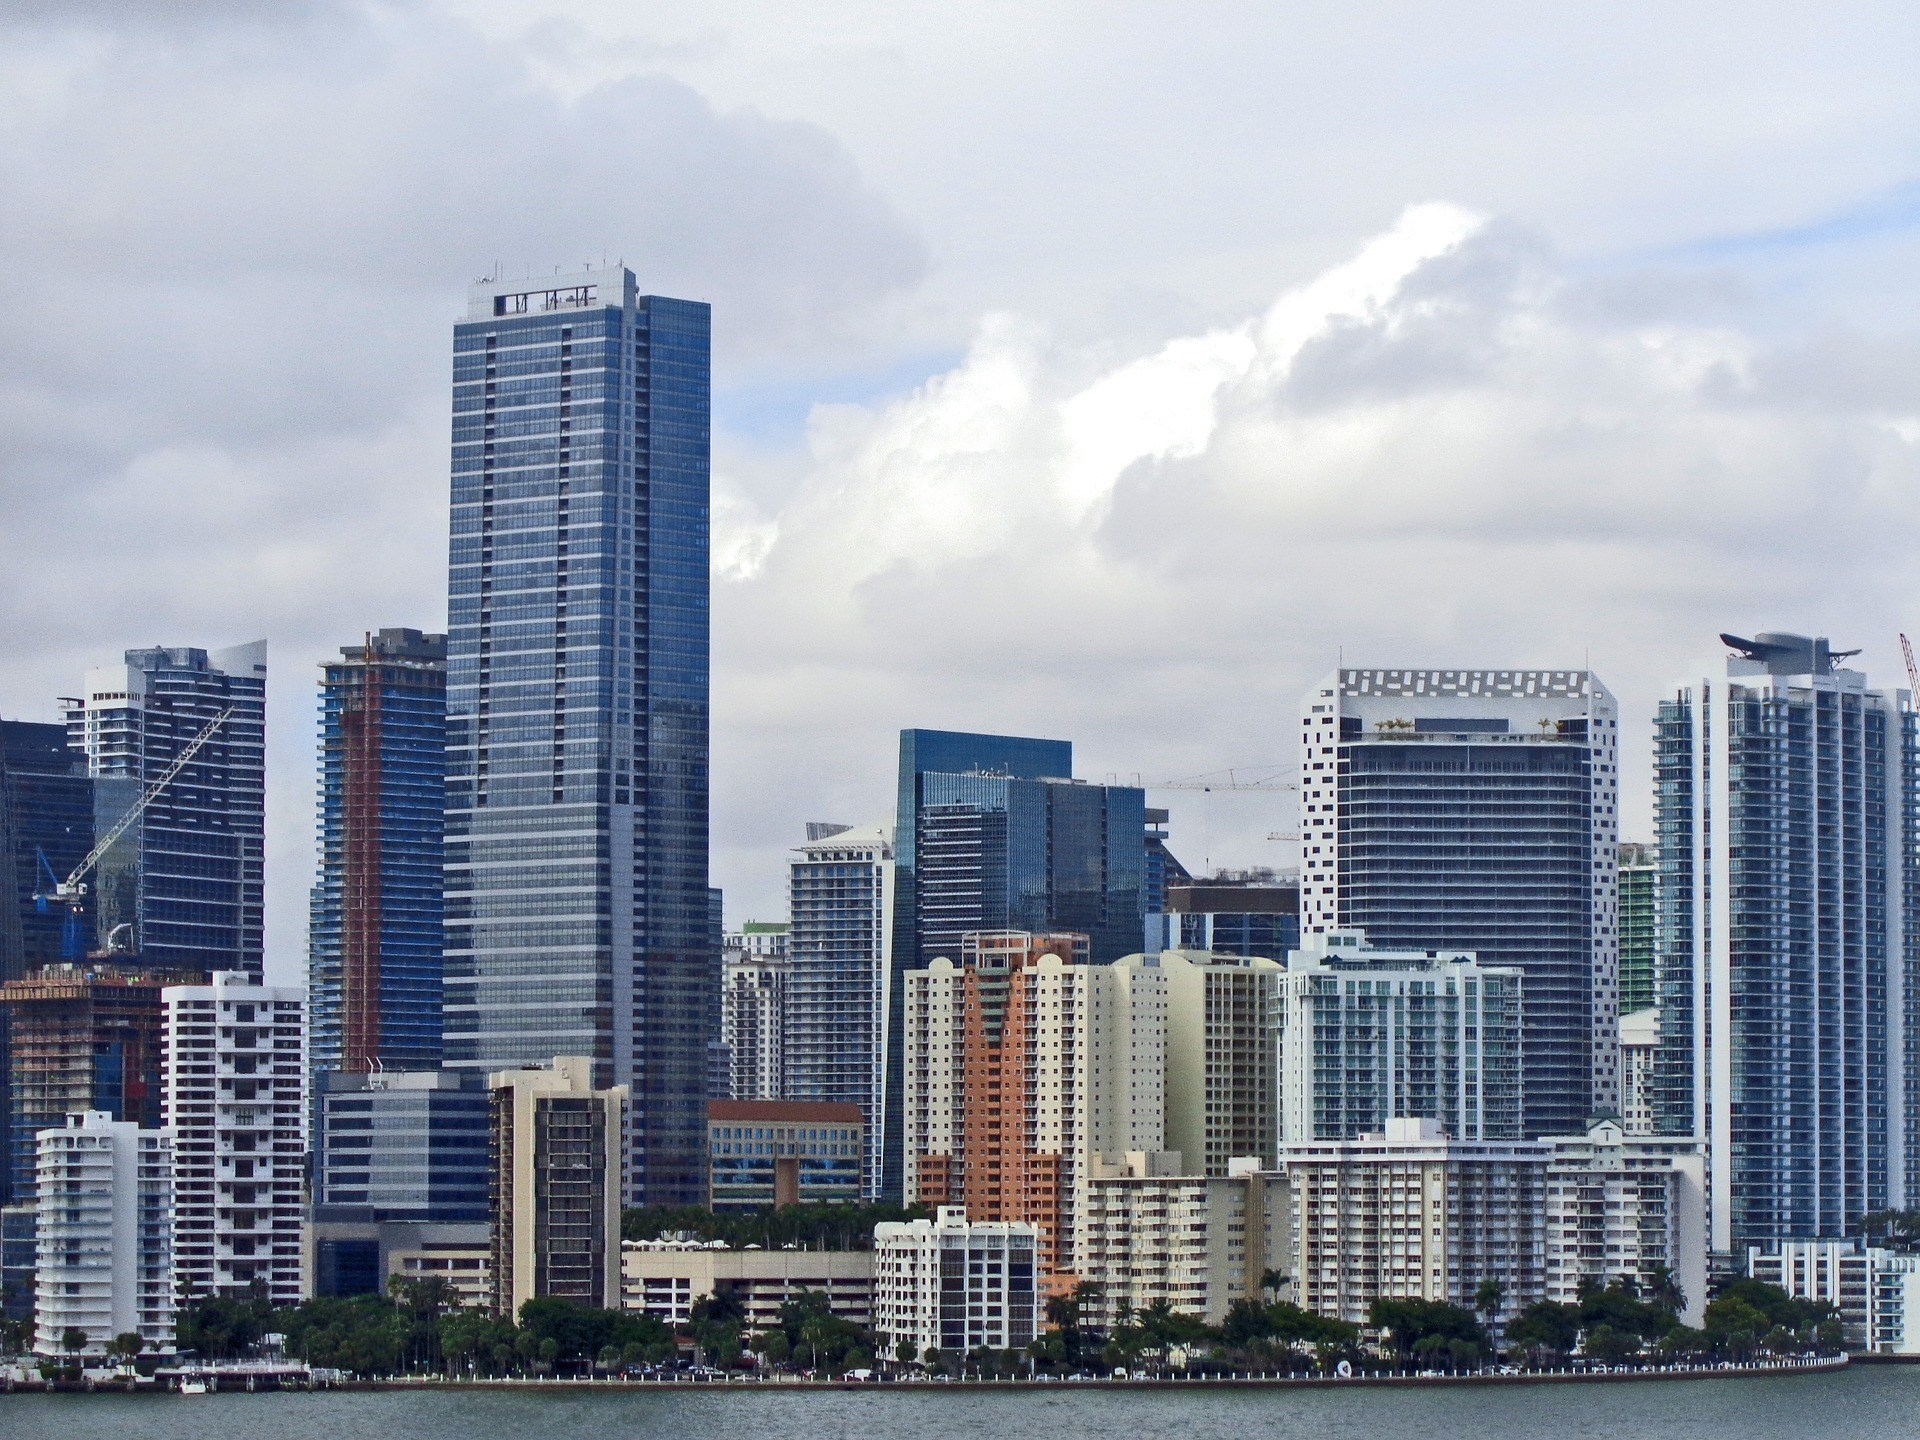 Downtown Miami skyline - Best Place to Stay for a first time in Miami